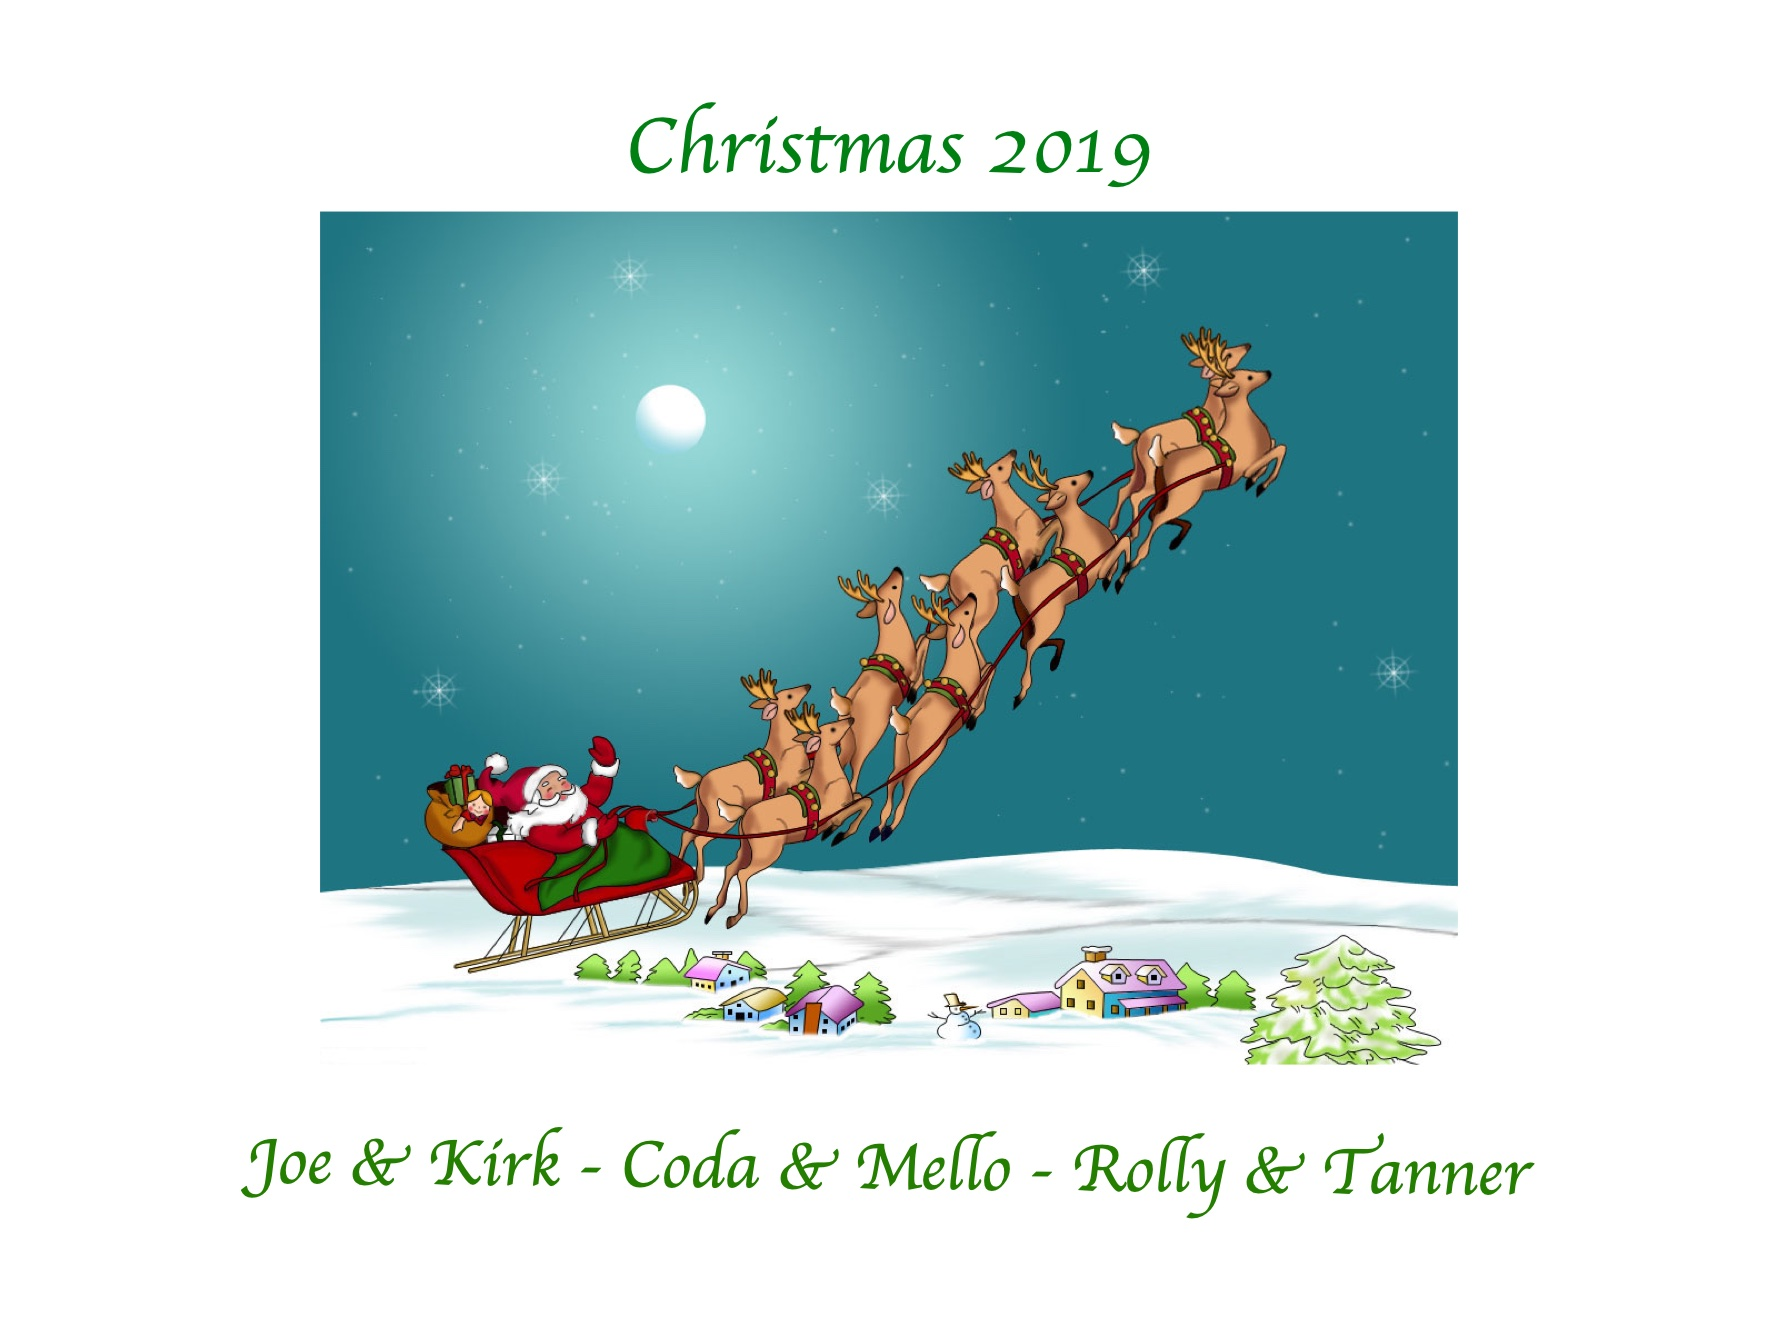 2019 Christmas card - Joe